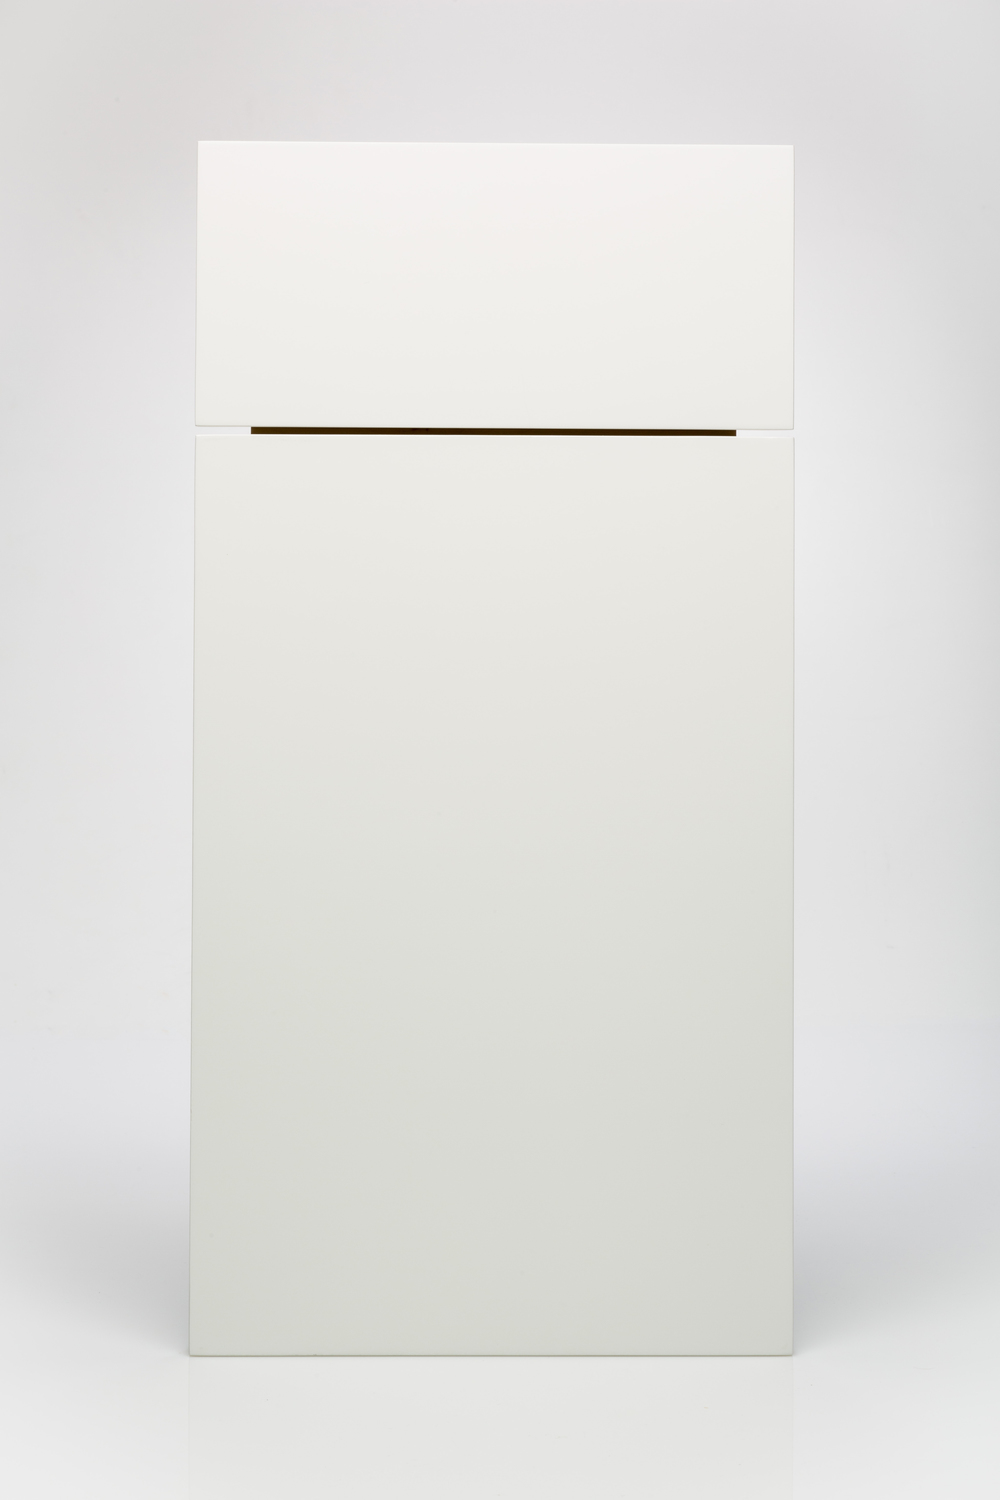 kokeena-for-ikea-the-minimalist.JPG